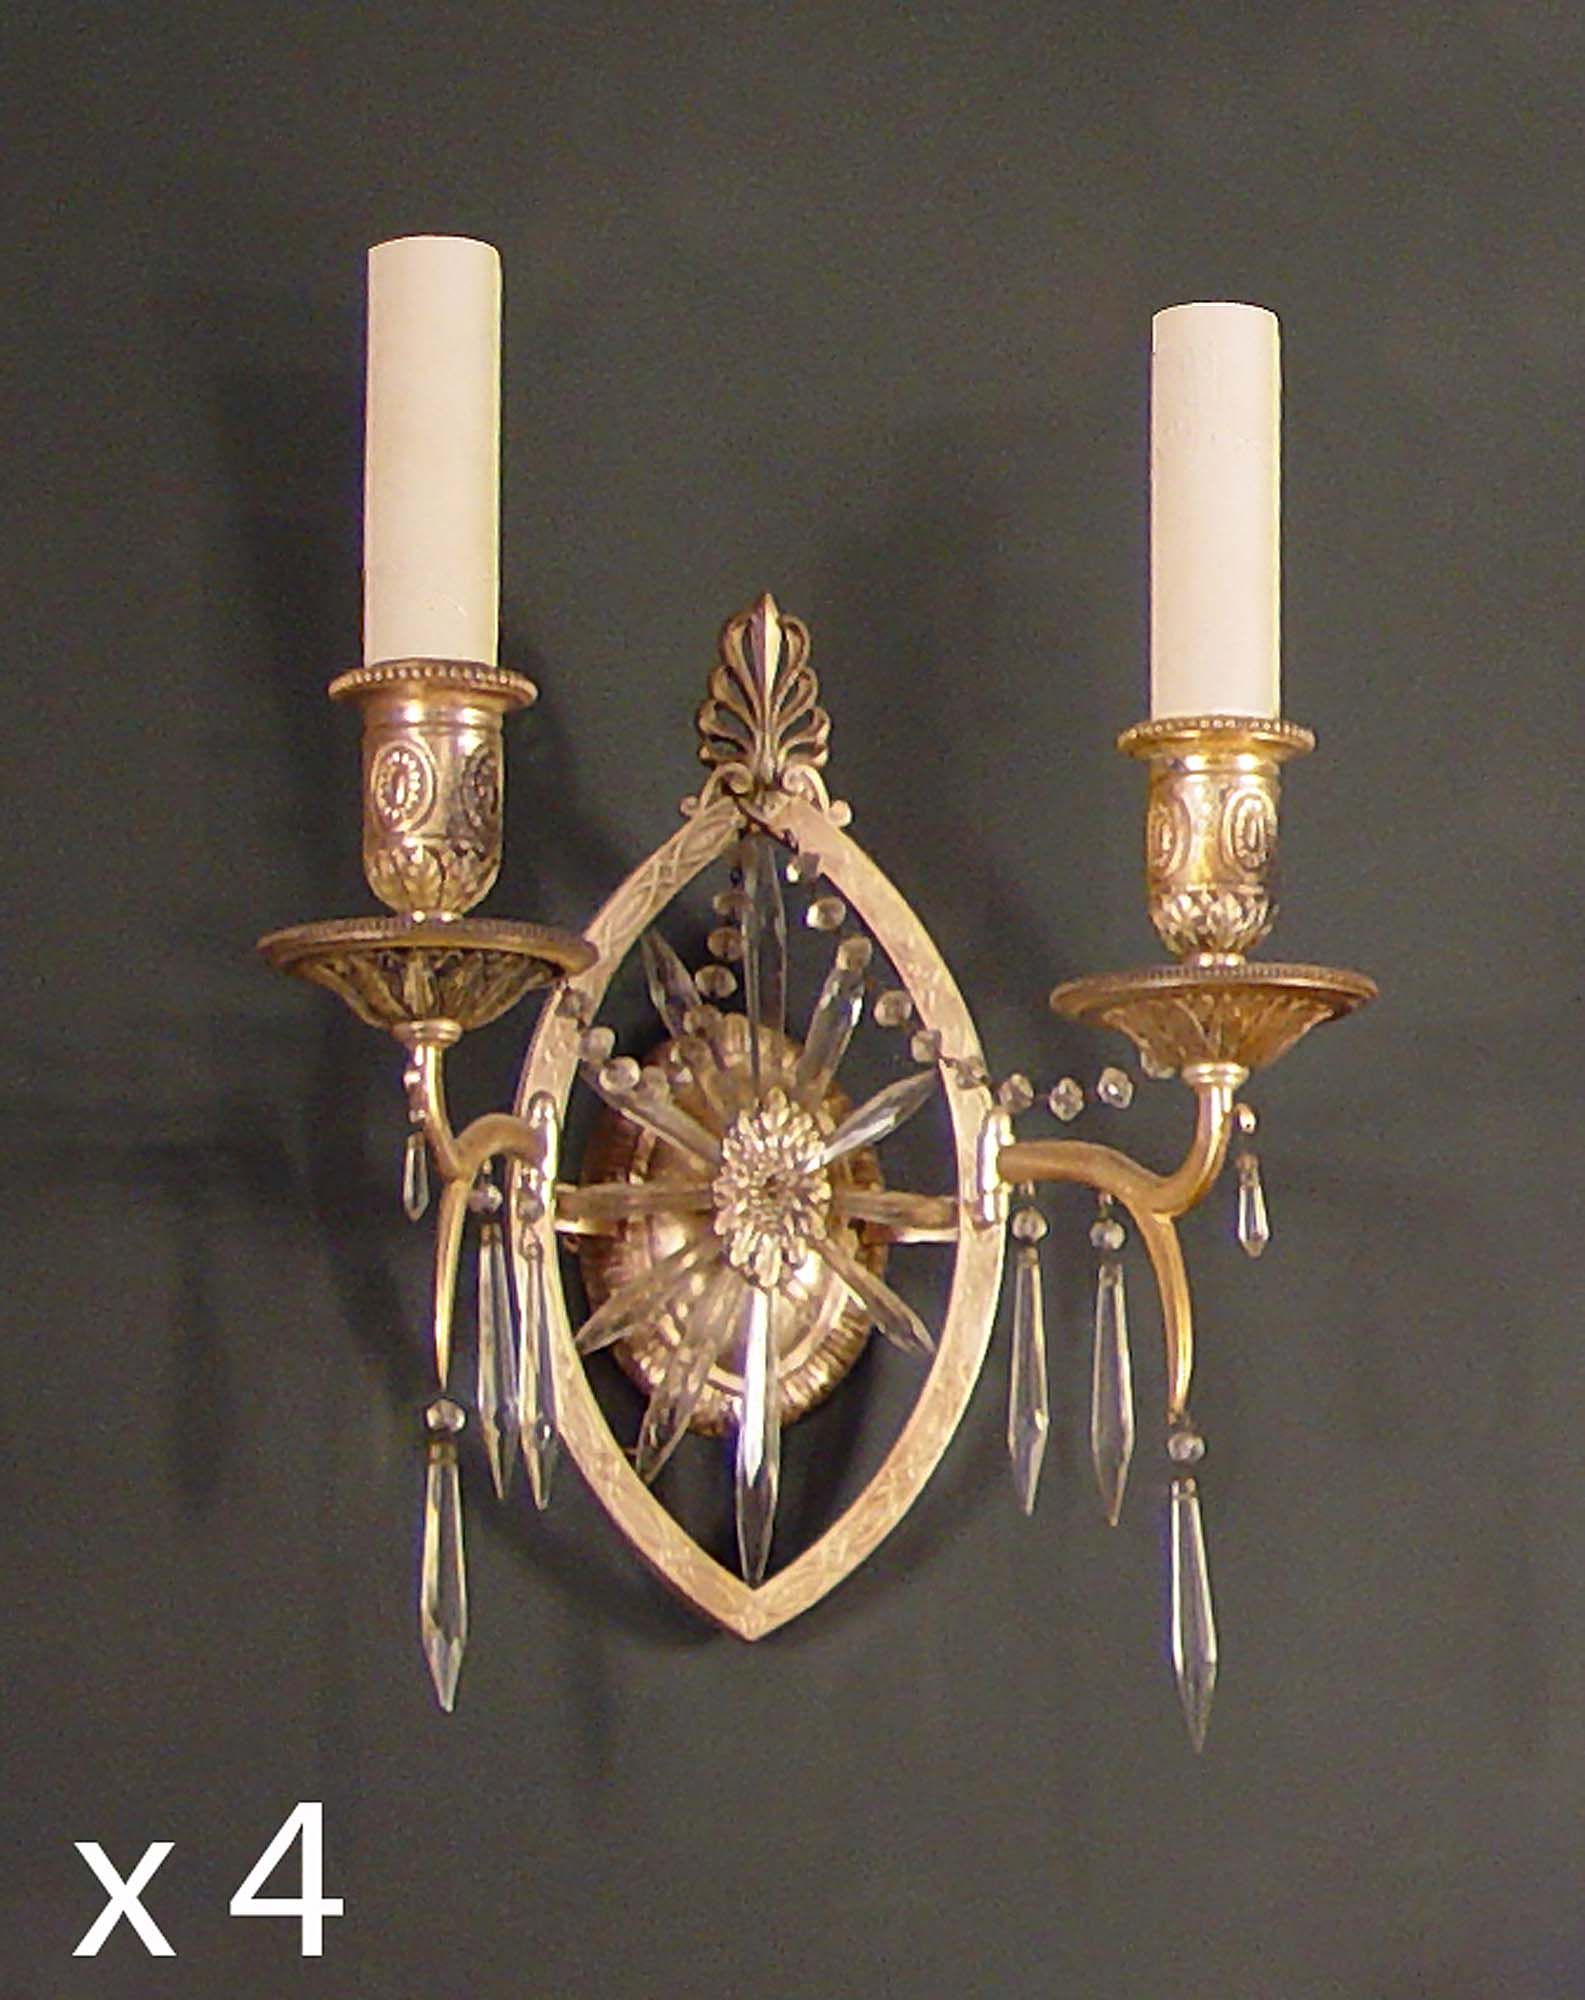 fixture light kings mansion wall replica bay product antique chateau crystal european small the lights sconce